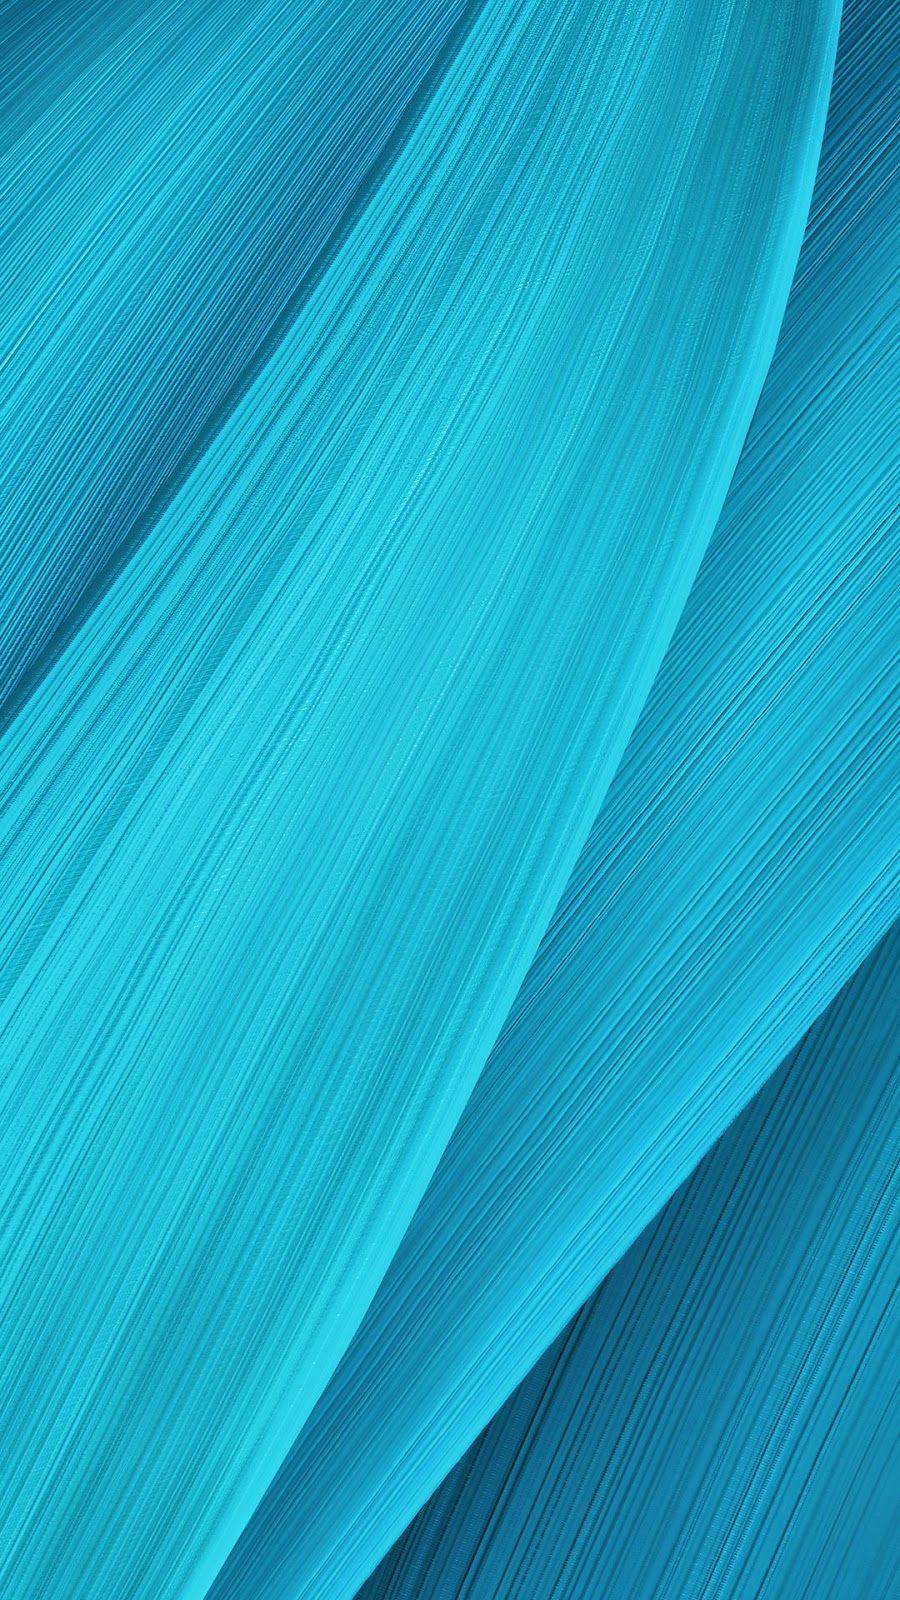 Zenfone 2 Wallpaper Posted By Ethan Tremblay